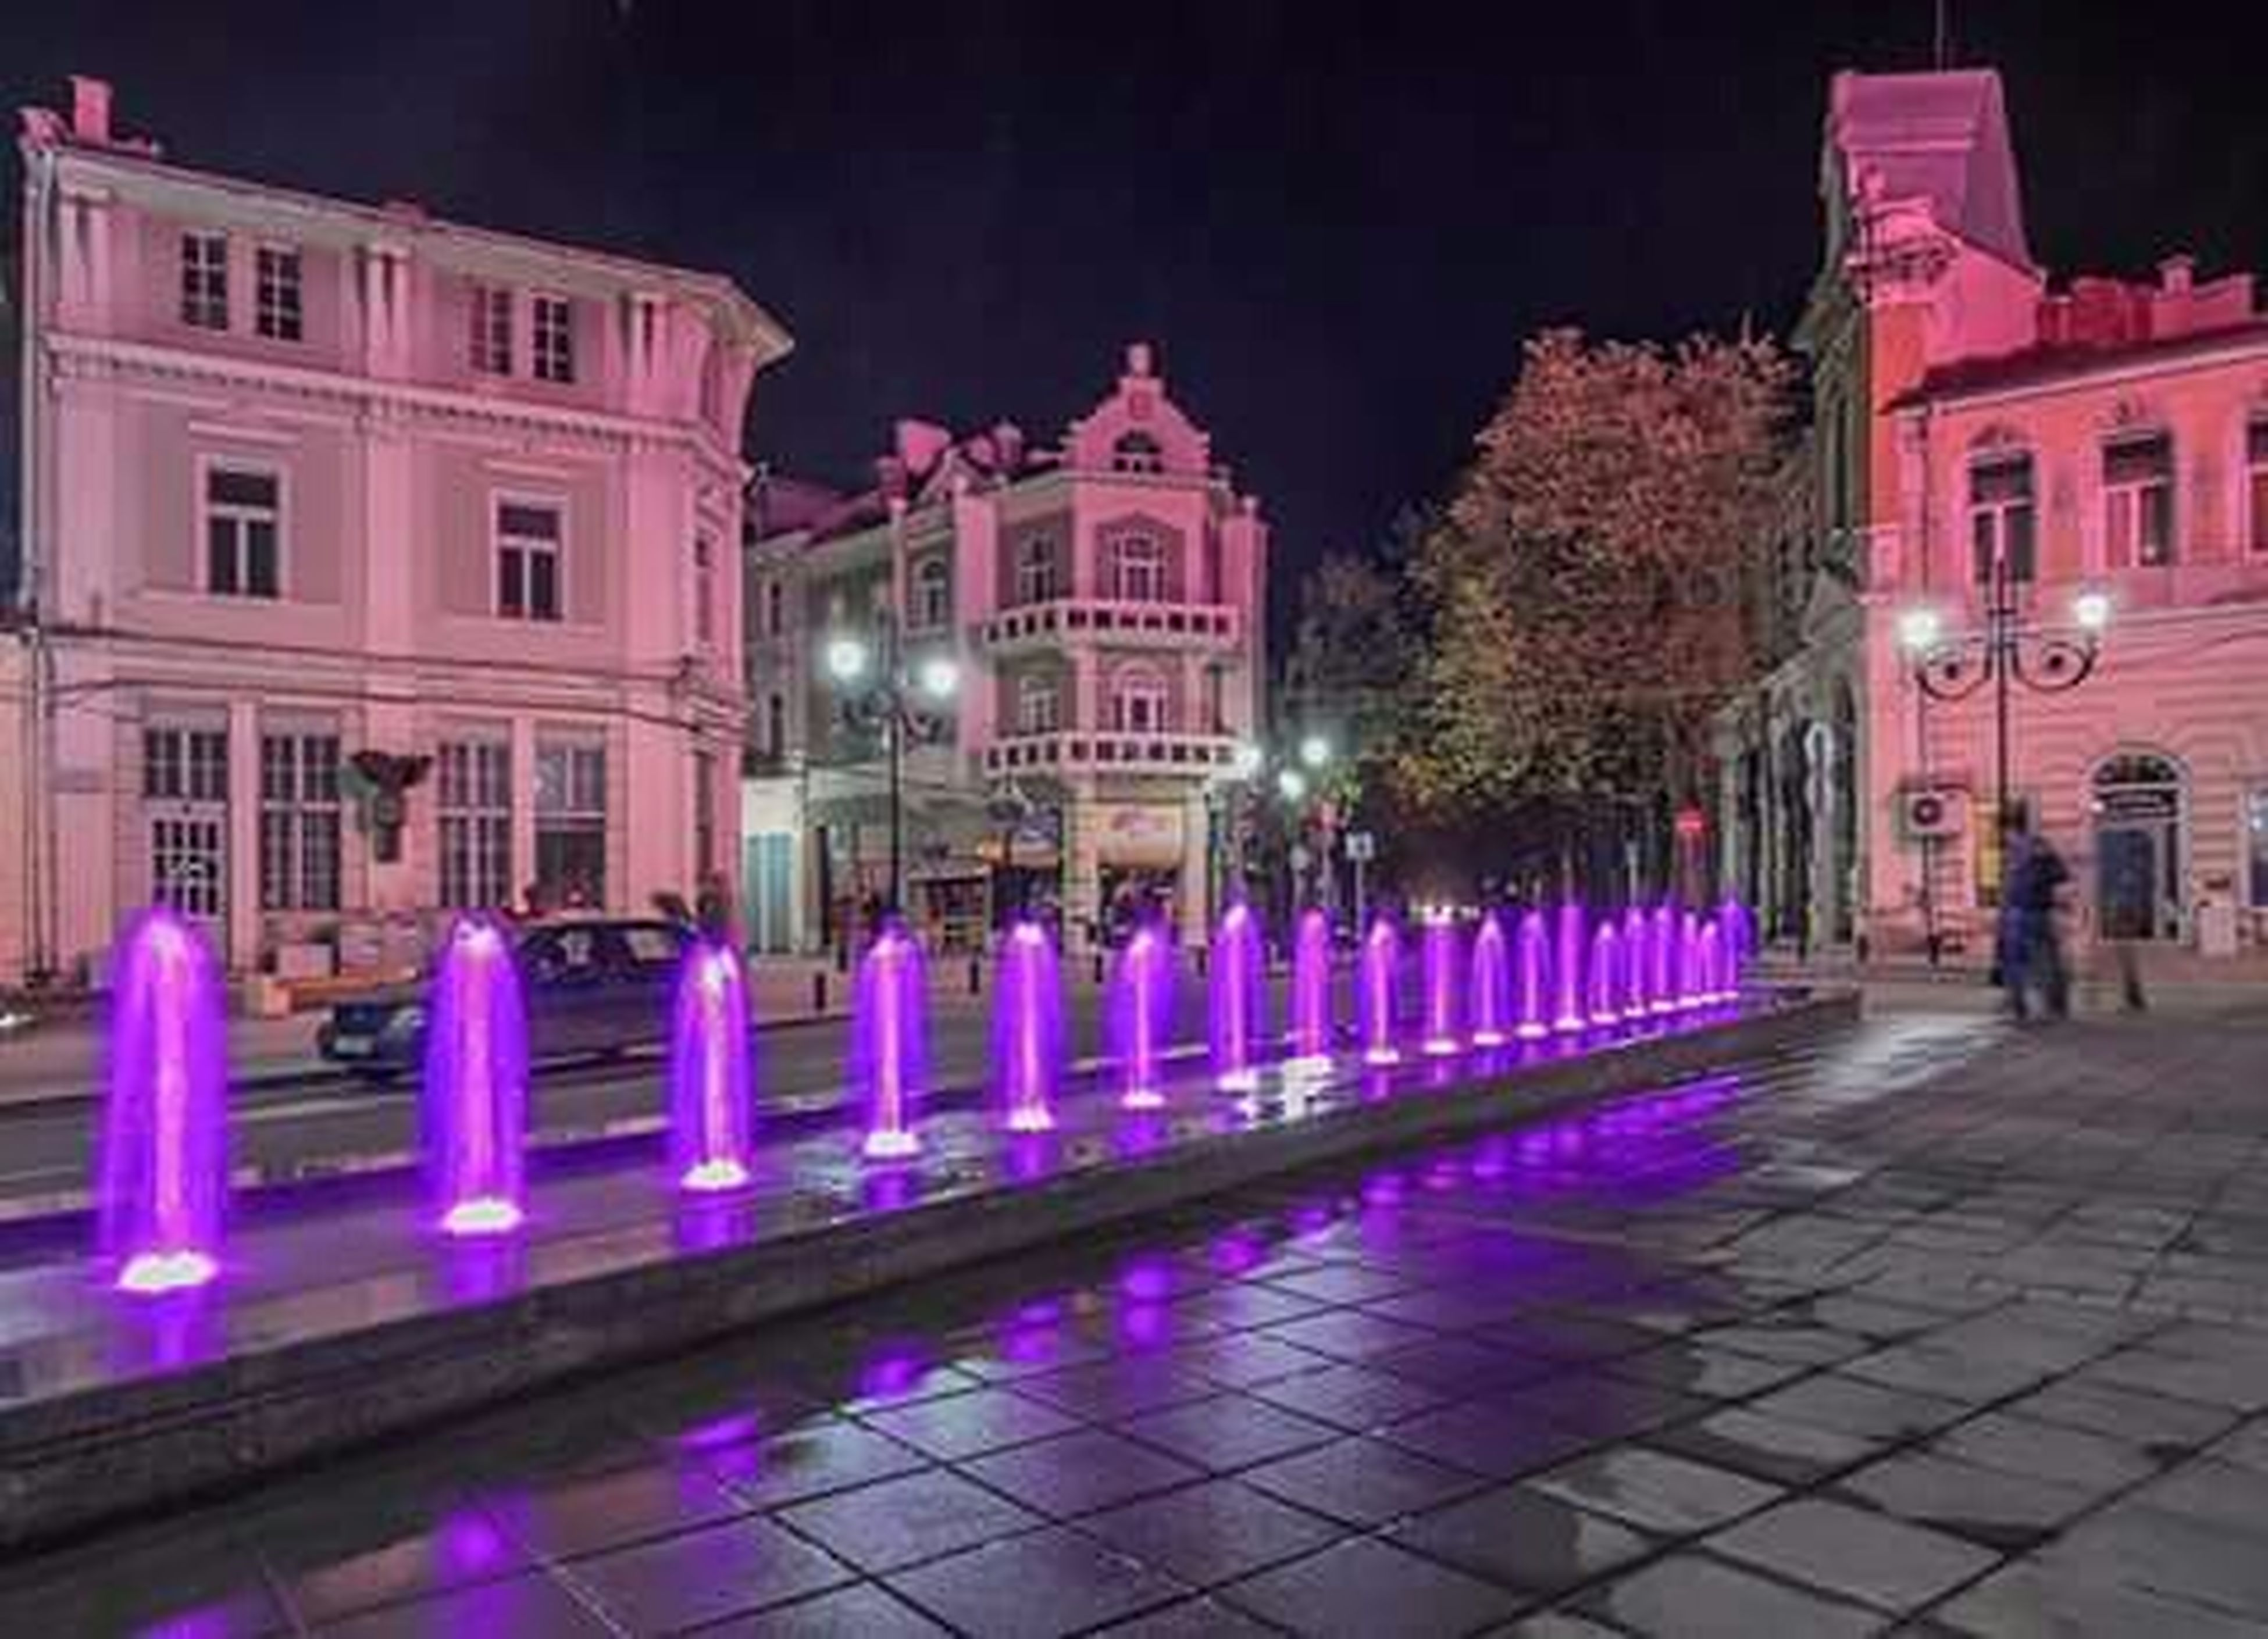 building exterior, night, illuminated, architecture, built structure, city, street, tree, street light, building, cobblestone, incidental people, outdoors, lighting equipment, facade, city life, residential building, sidewalk, residential structure, footpath